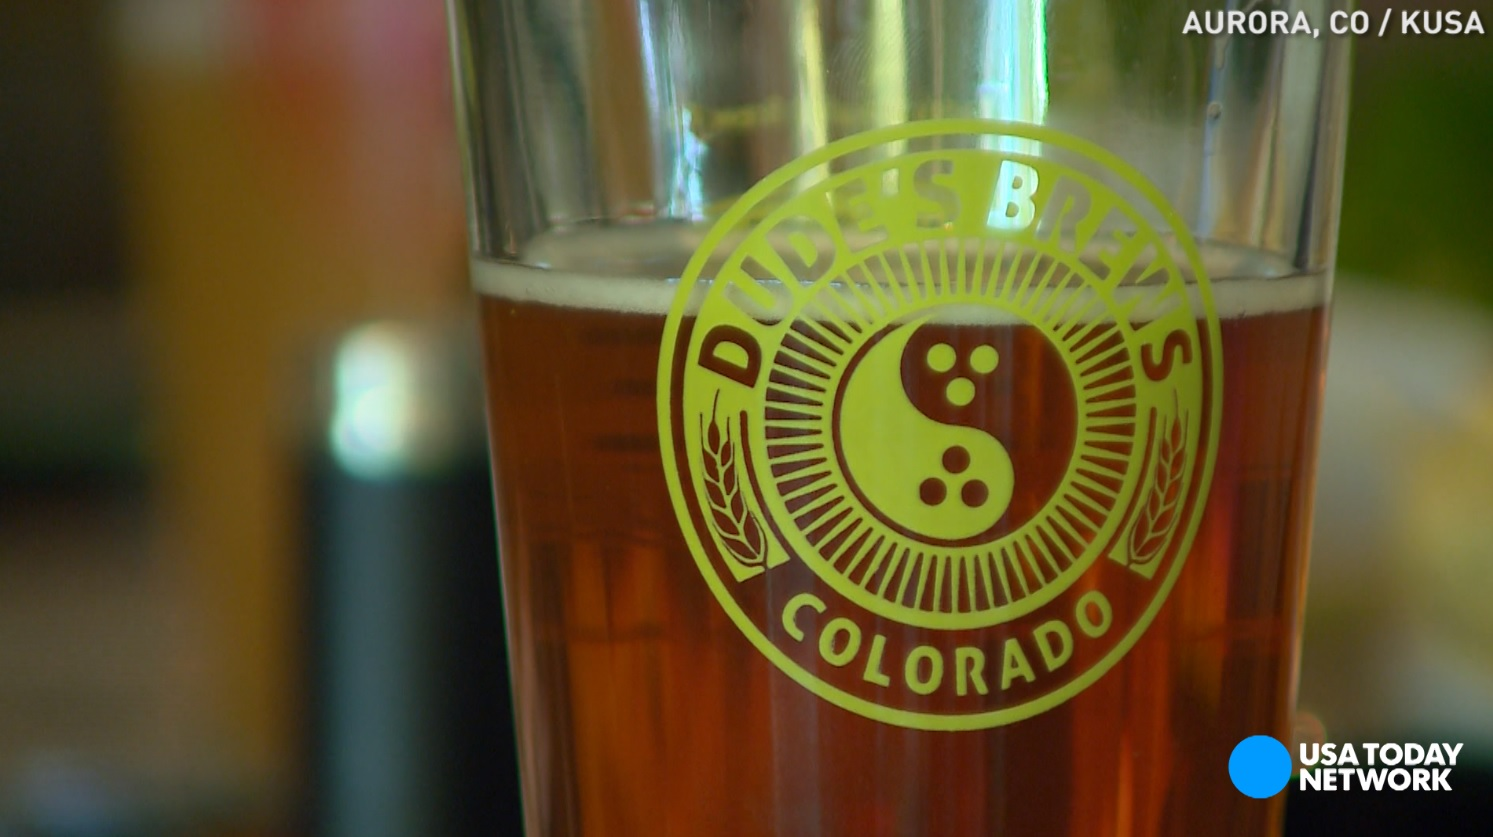 Cannabis-infused beer has been on tap in Colorado for around a year, but it now could hit kegs and liquor store shelves across the country. The brewer explains his unique concoction with a not-so-secret ingredient.